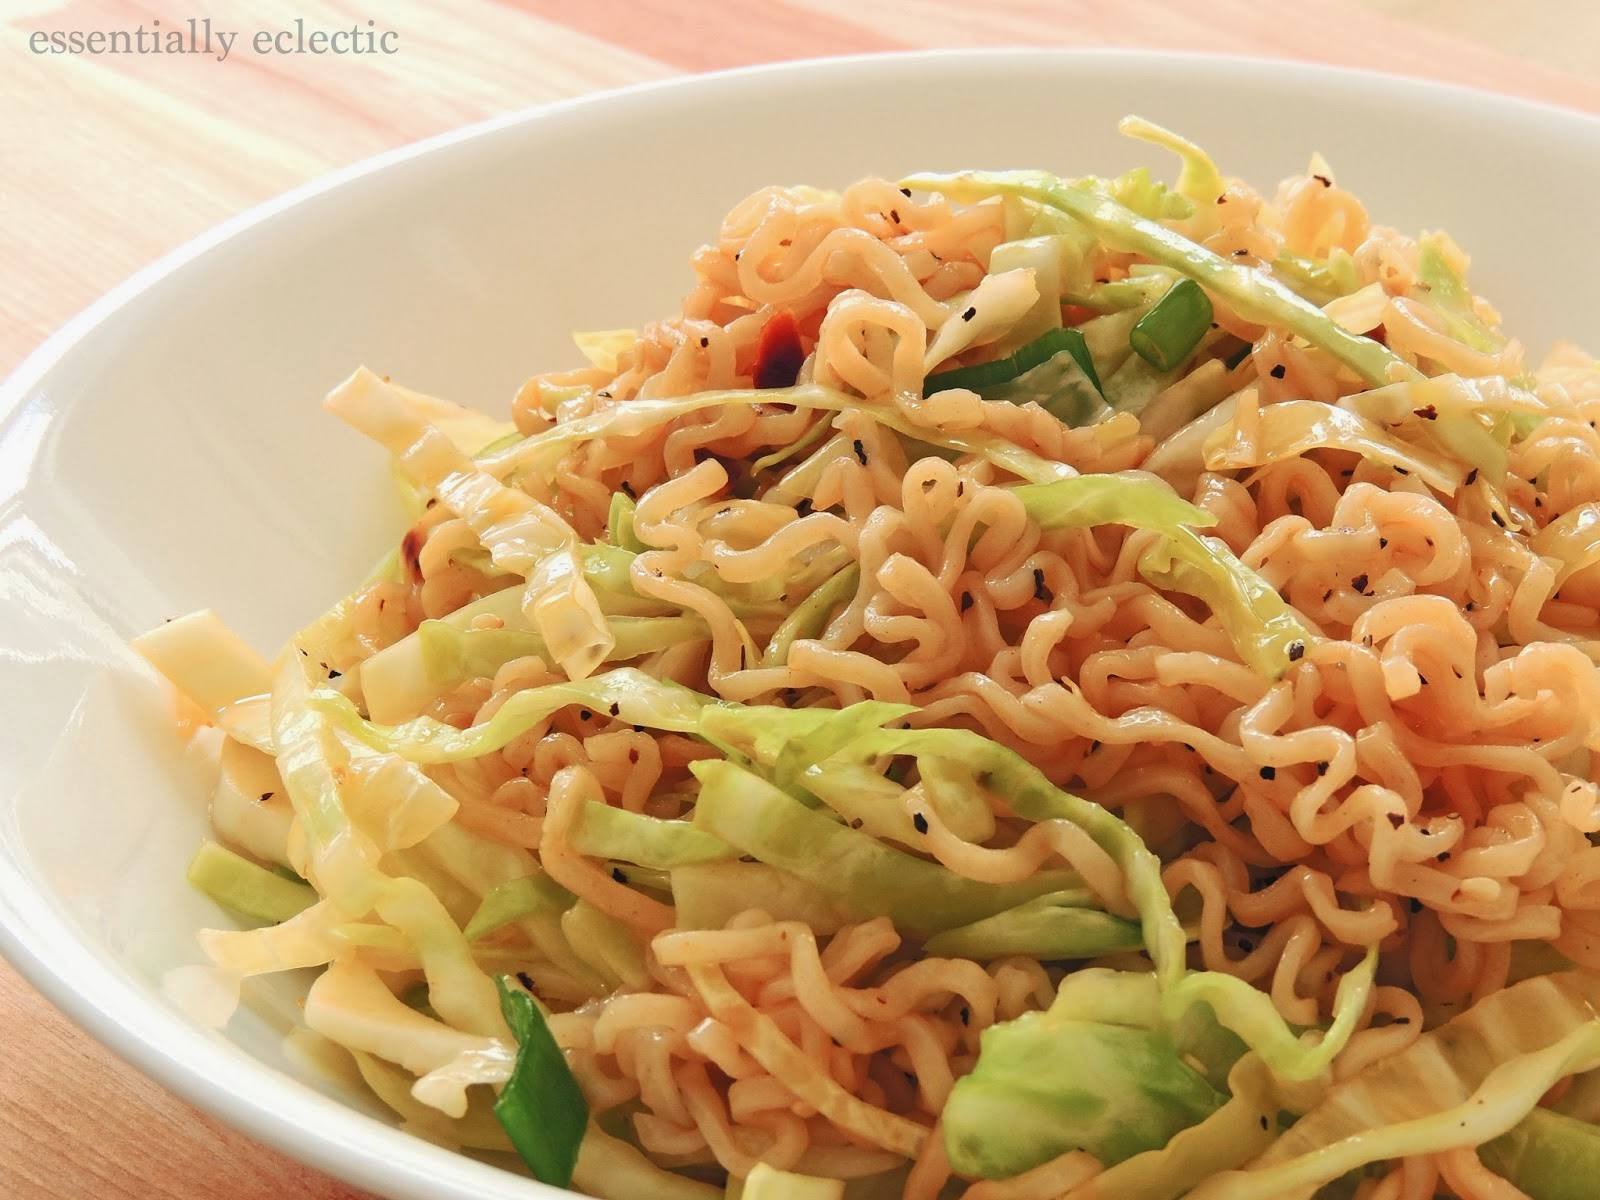 http://www.essentiallyeclectic.com/2013/05/asian-ramen-noodle-cabbage-salad.html